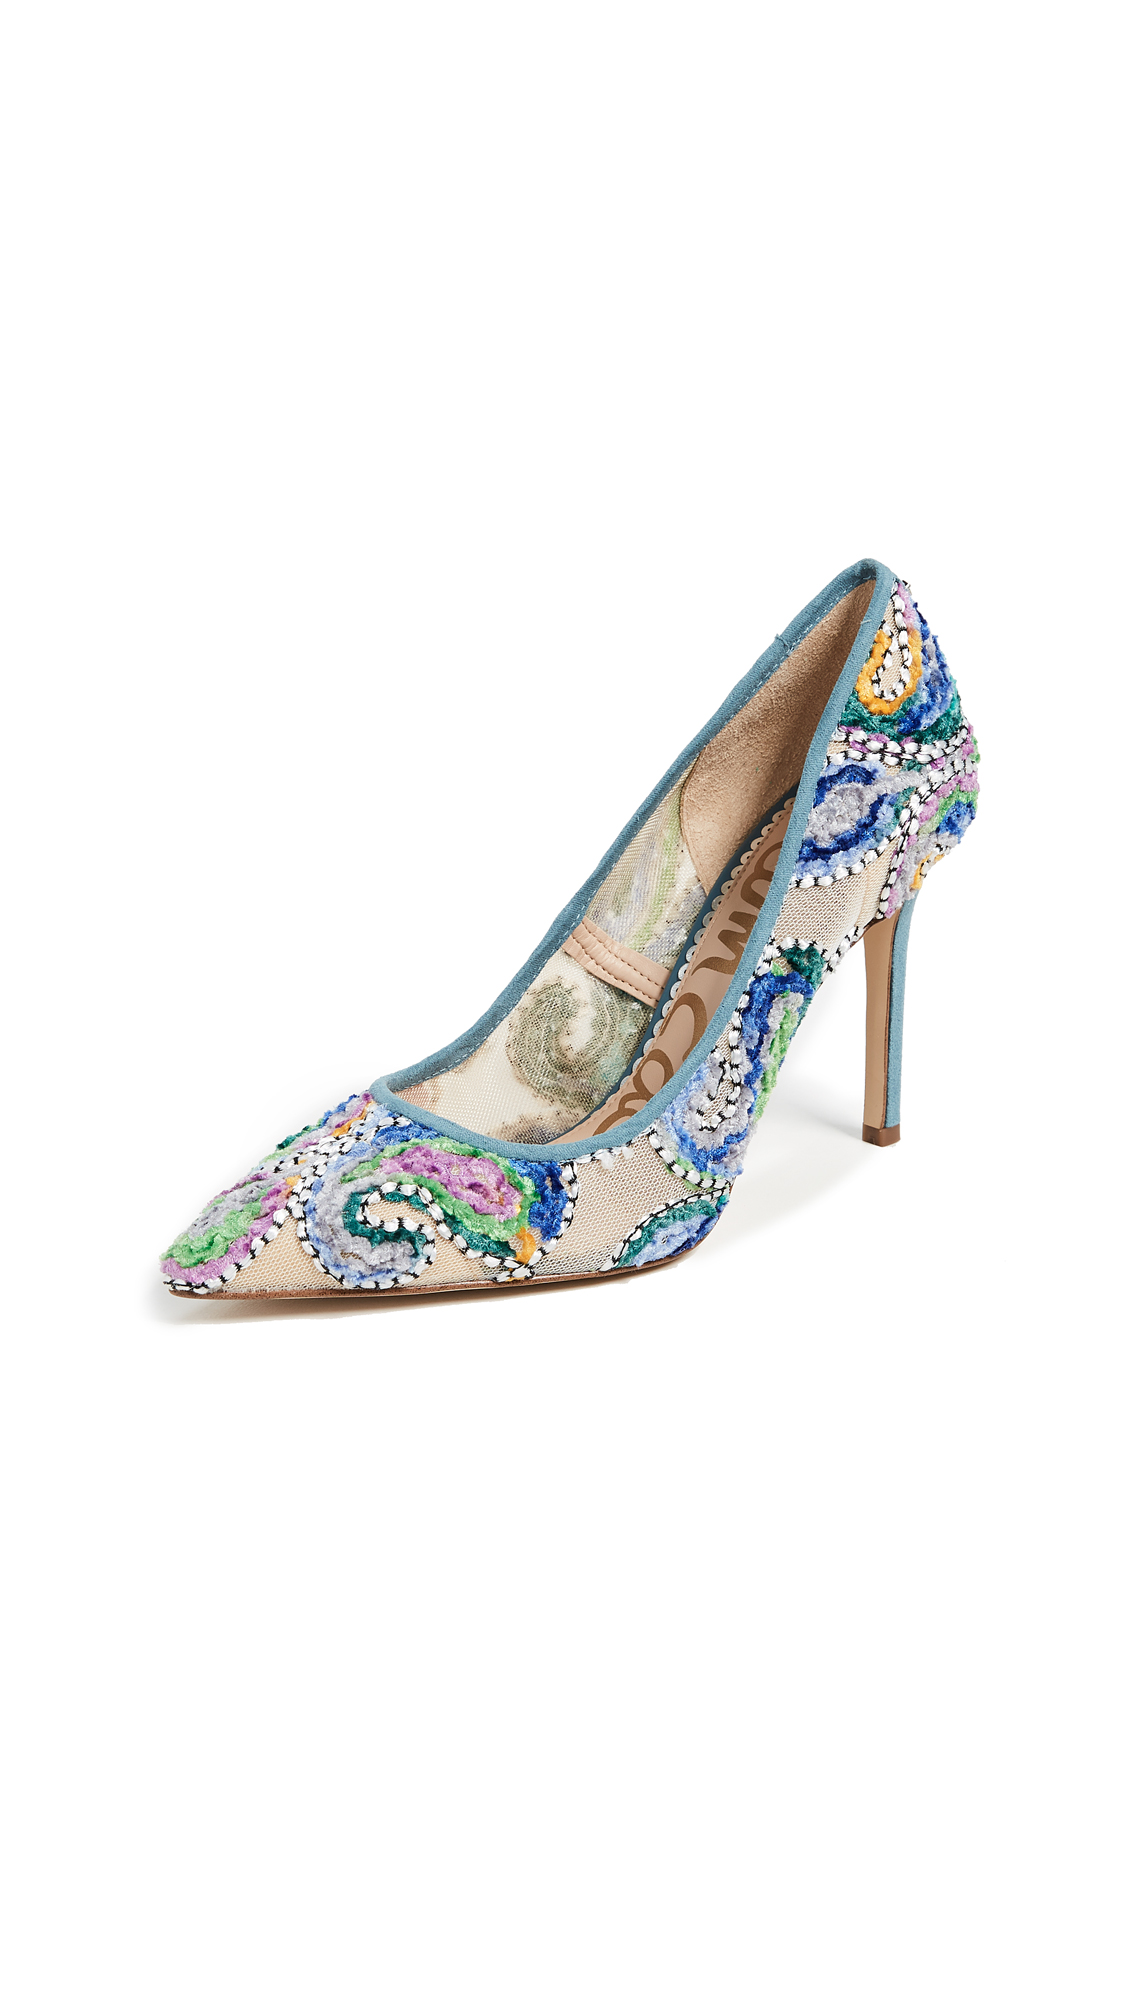 Sam Edelman Hazel Pumps - Blue Multi